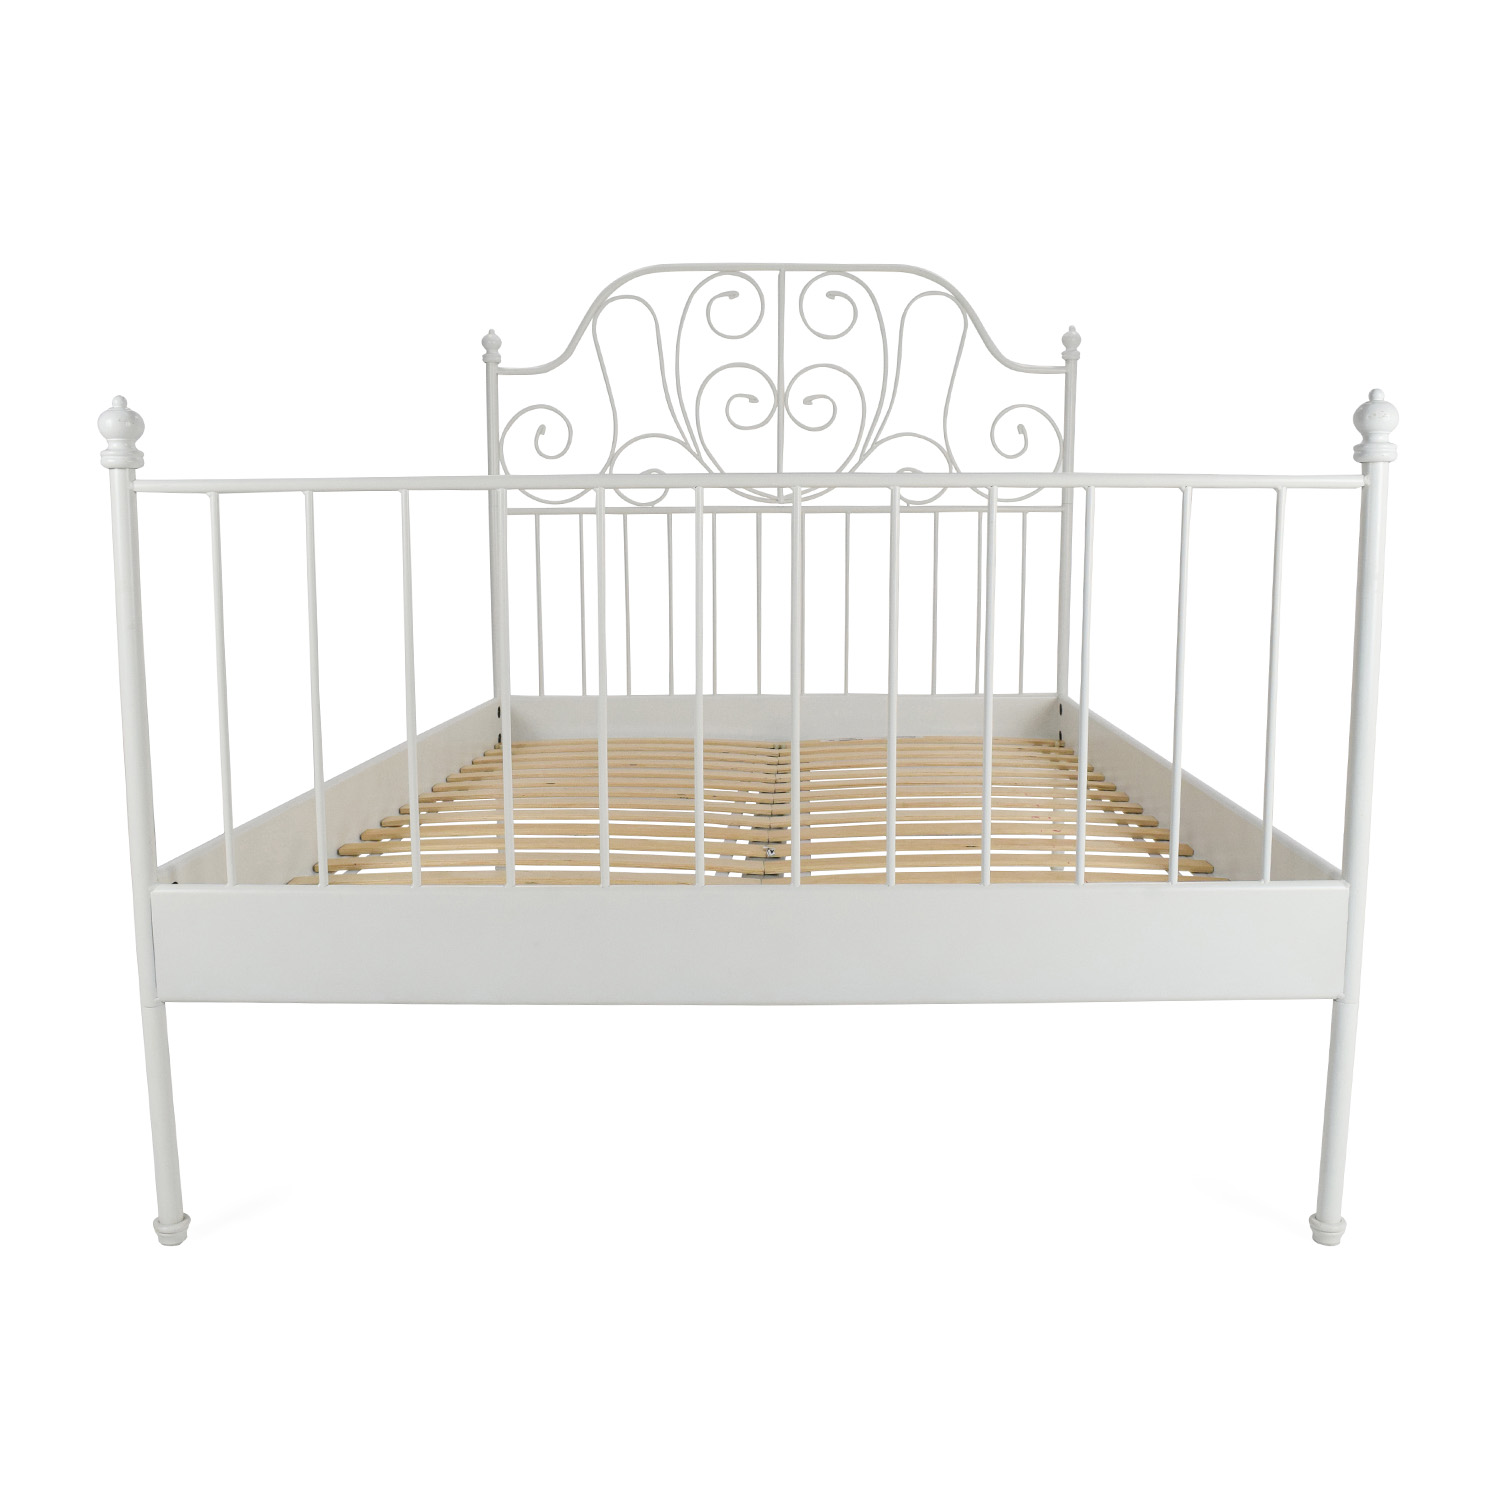 Single bed second hand for Full size bed ikea